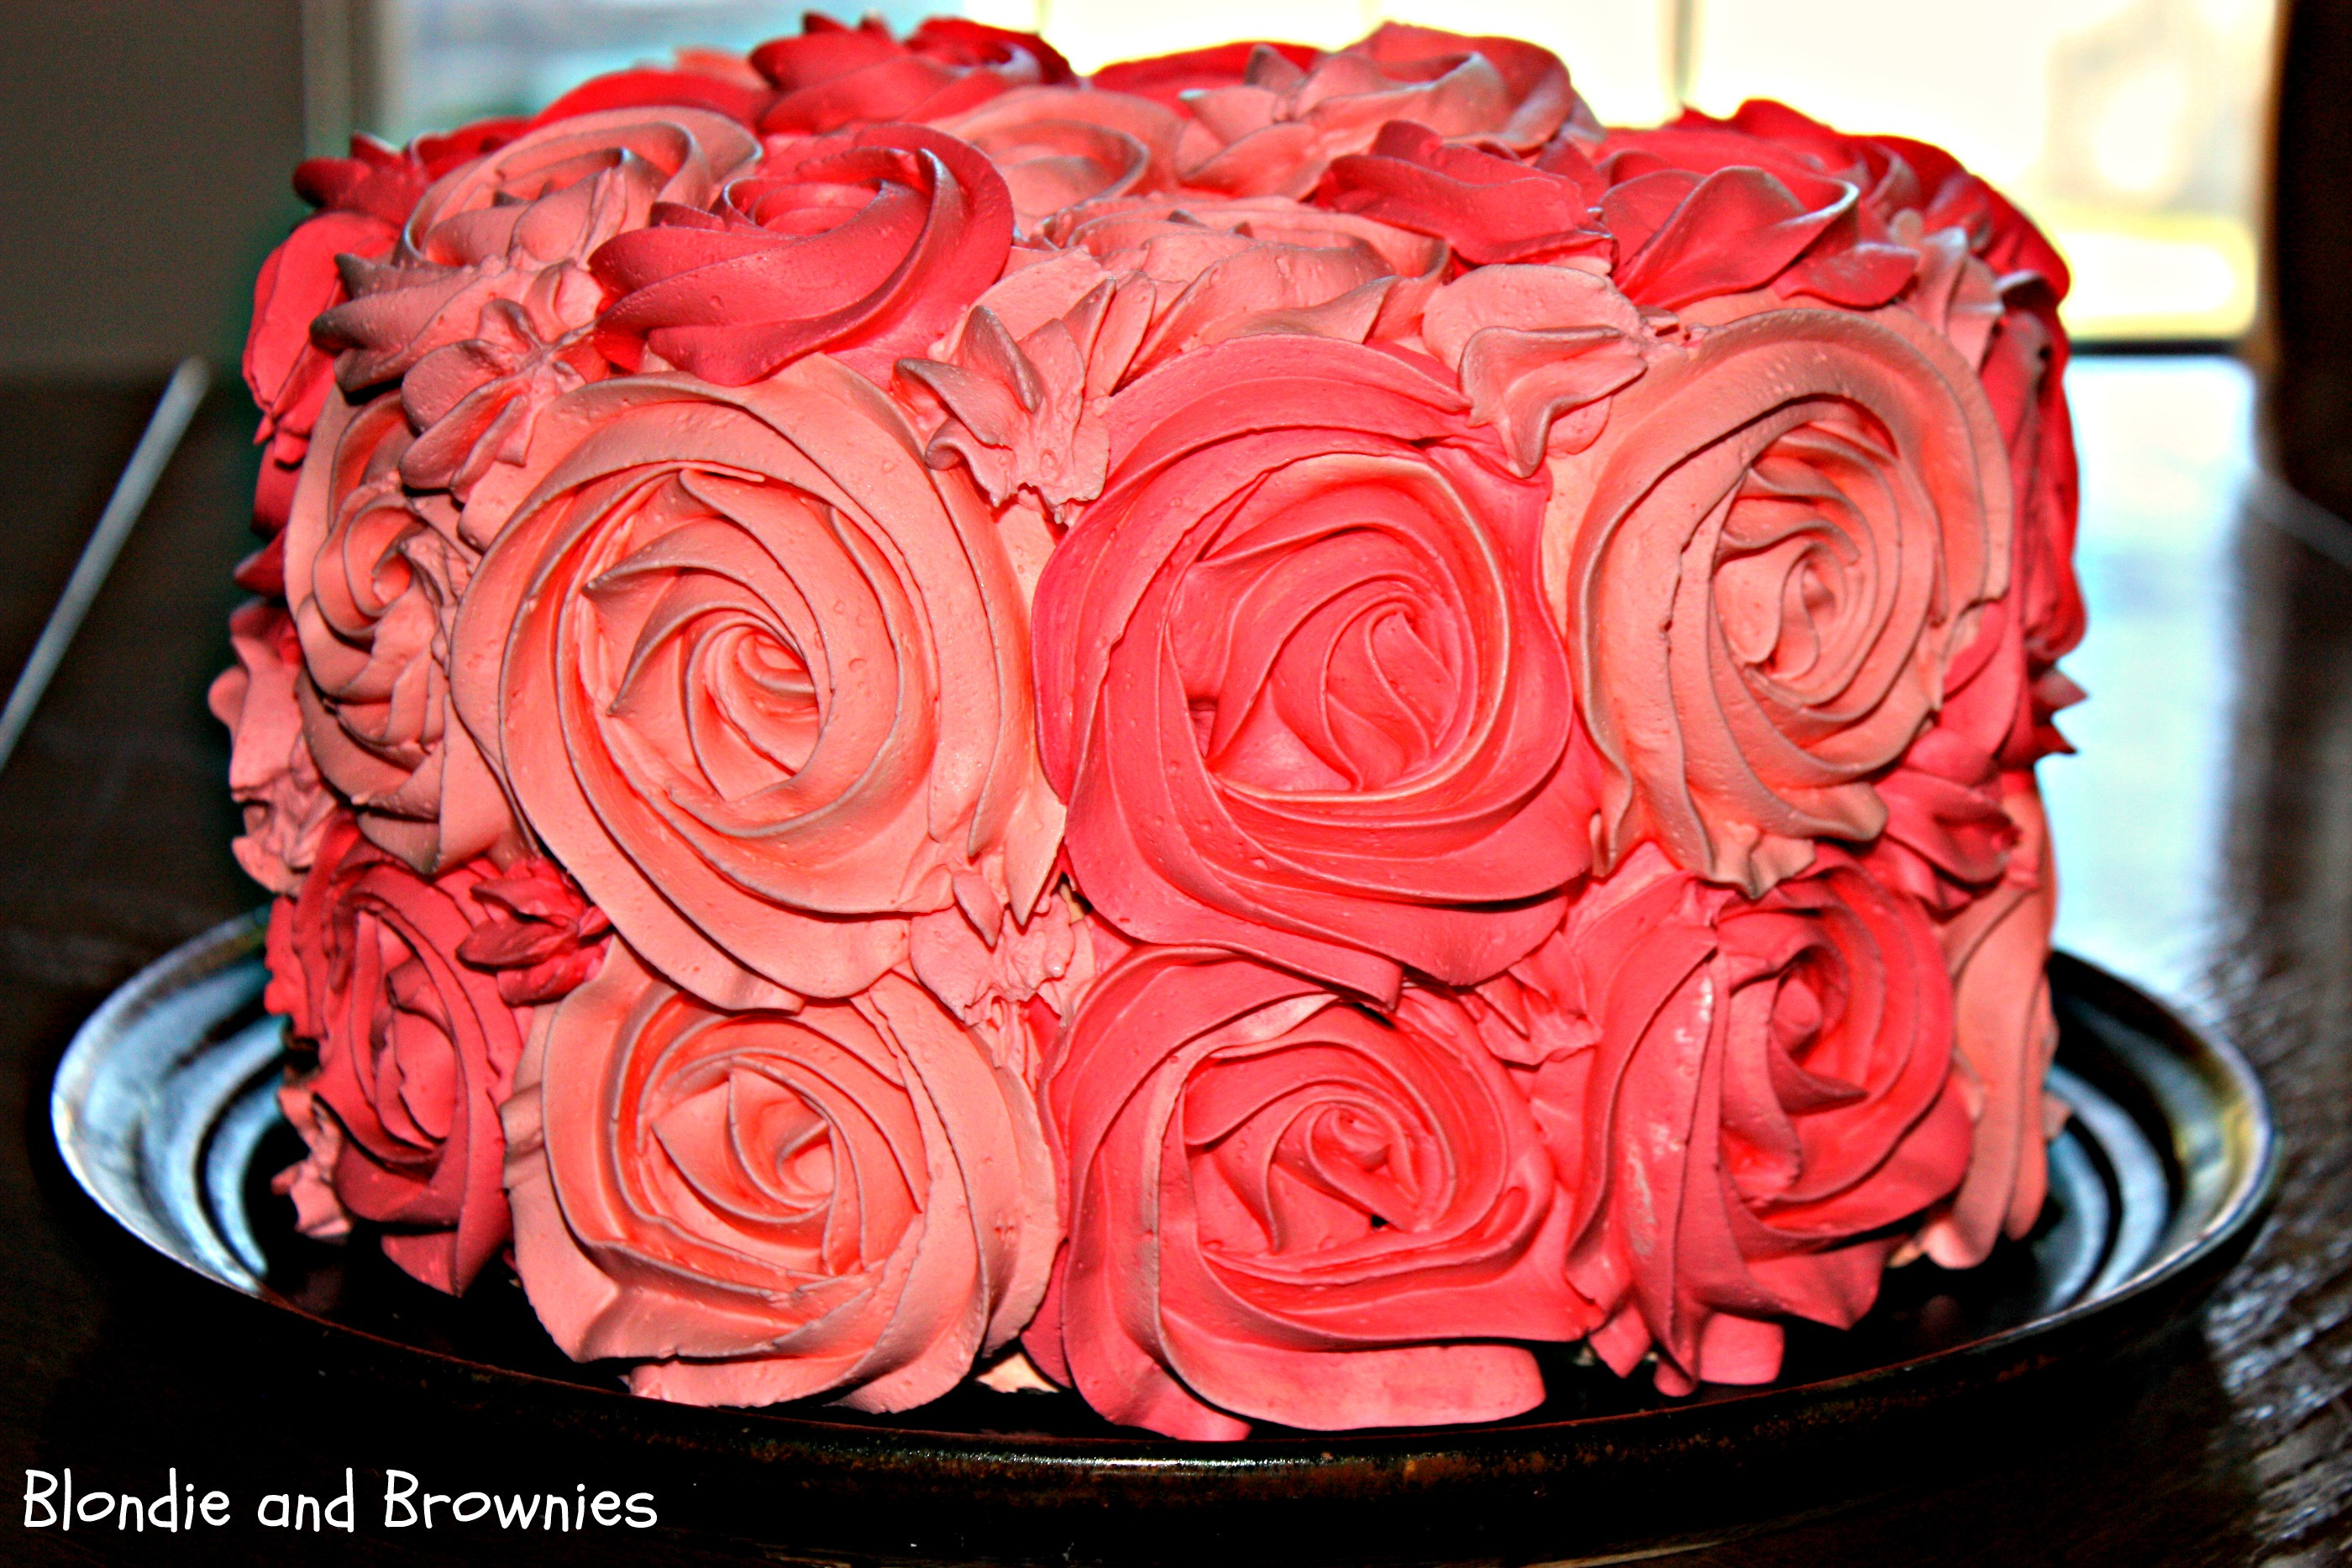 Best ideas about Roses Birthday Cake . Save or Pin Rose Cake – Blon and Brownies Now.